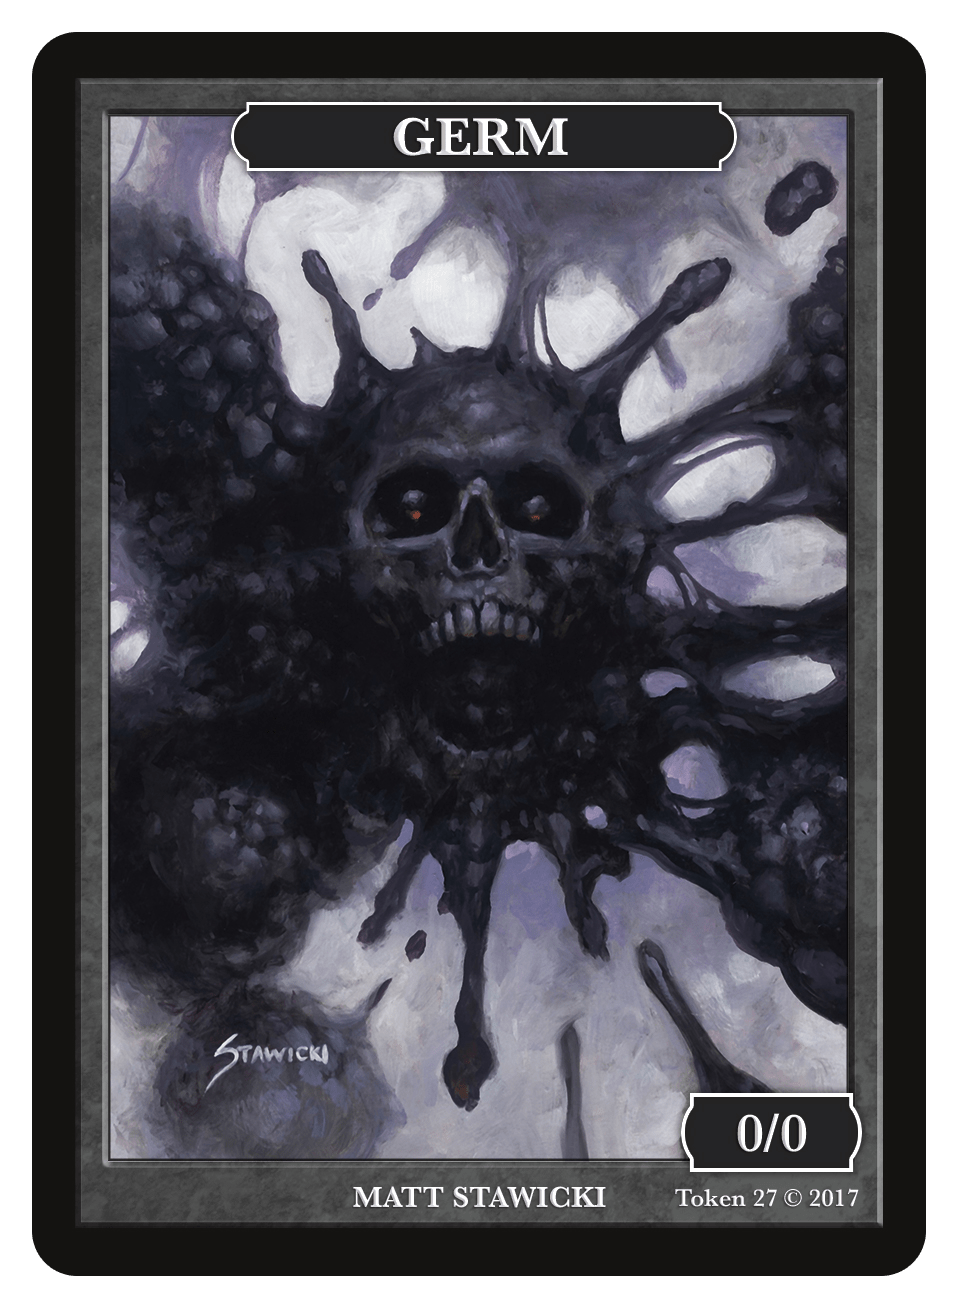 Germ Token (0/0) by Matt Stawicki - Token - Original Magic Art - Accessories for Magic the Gathering and other card games